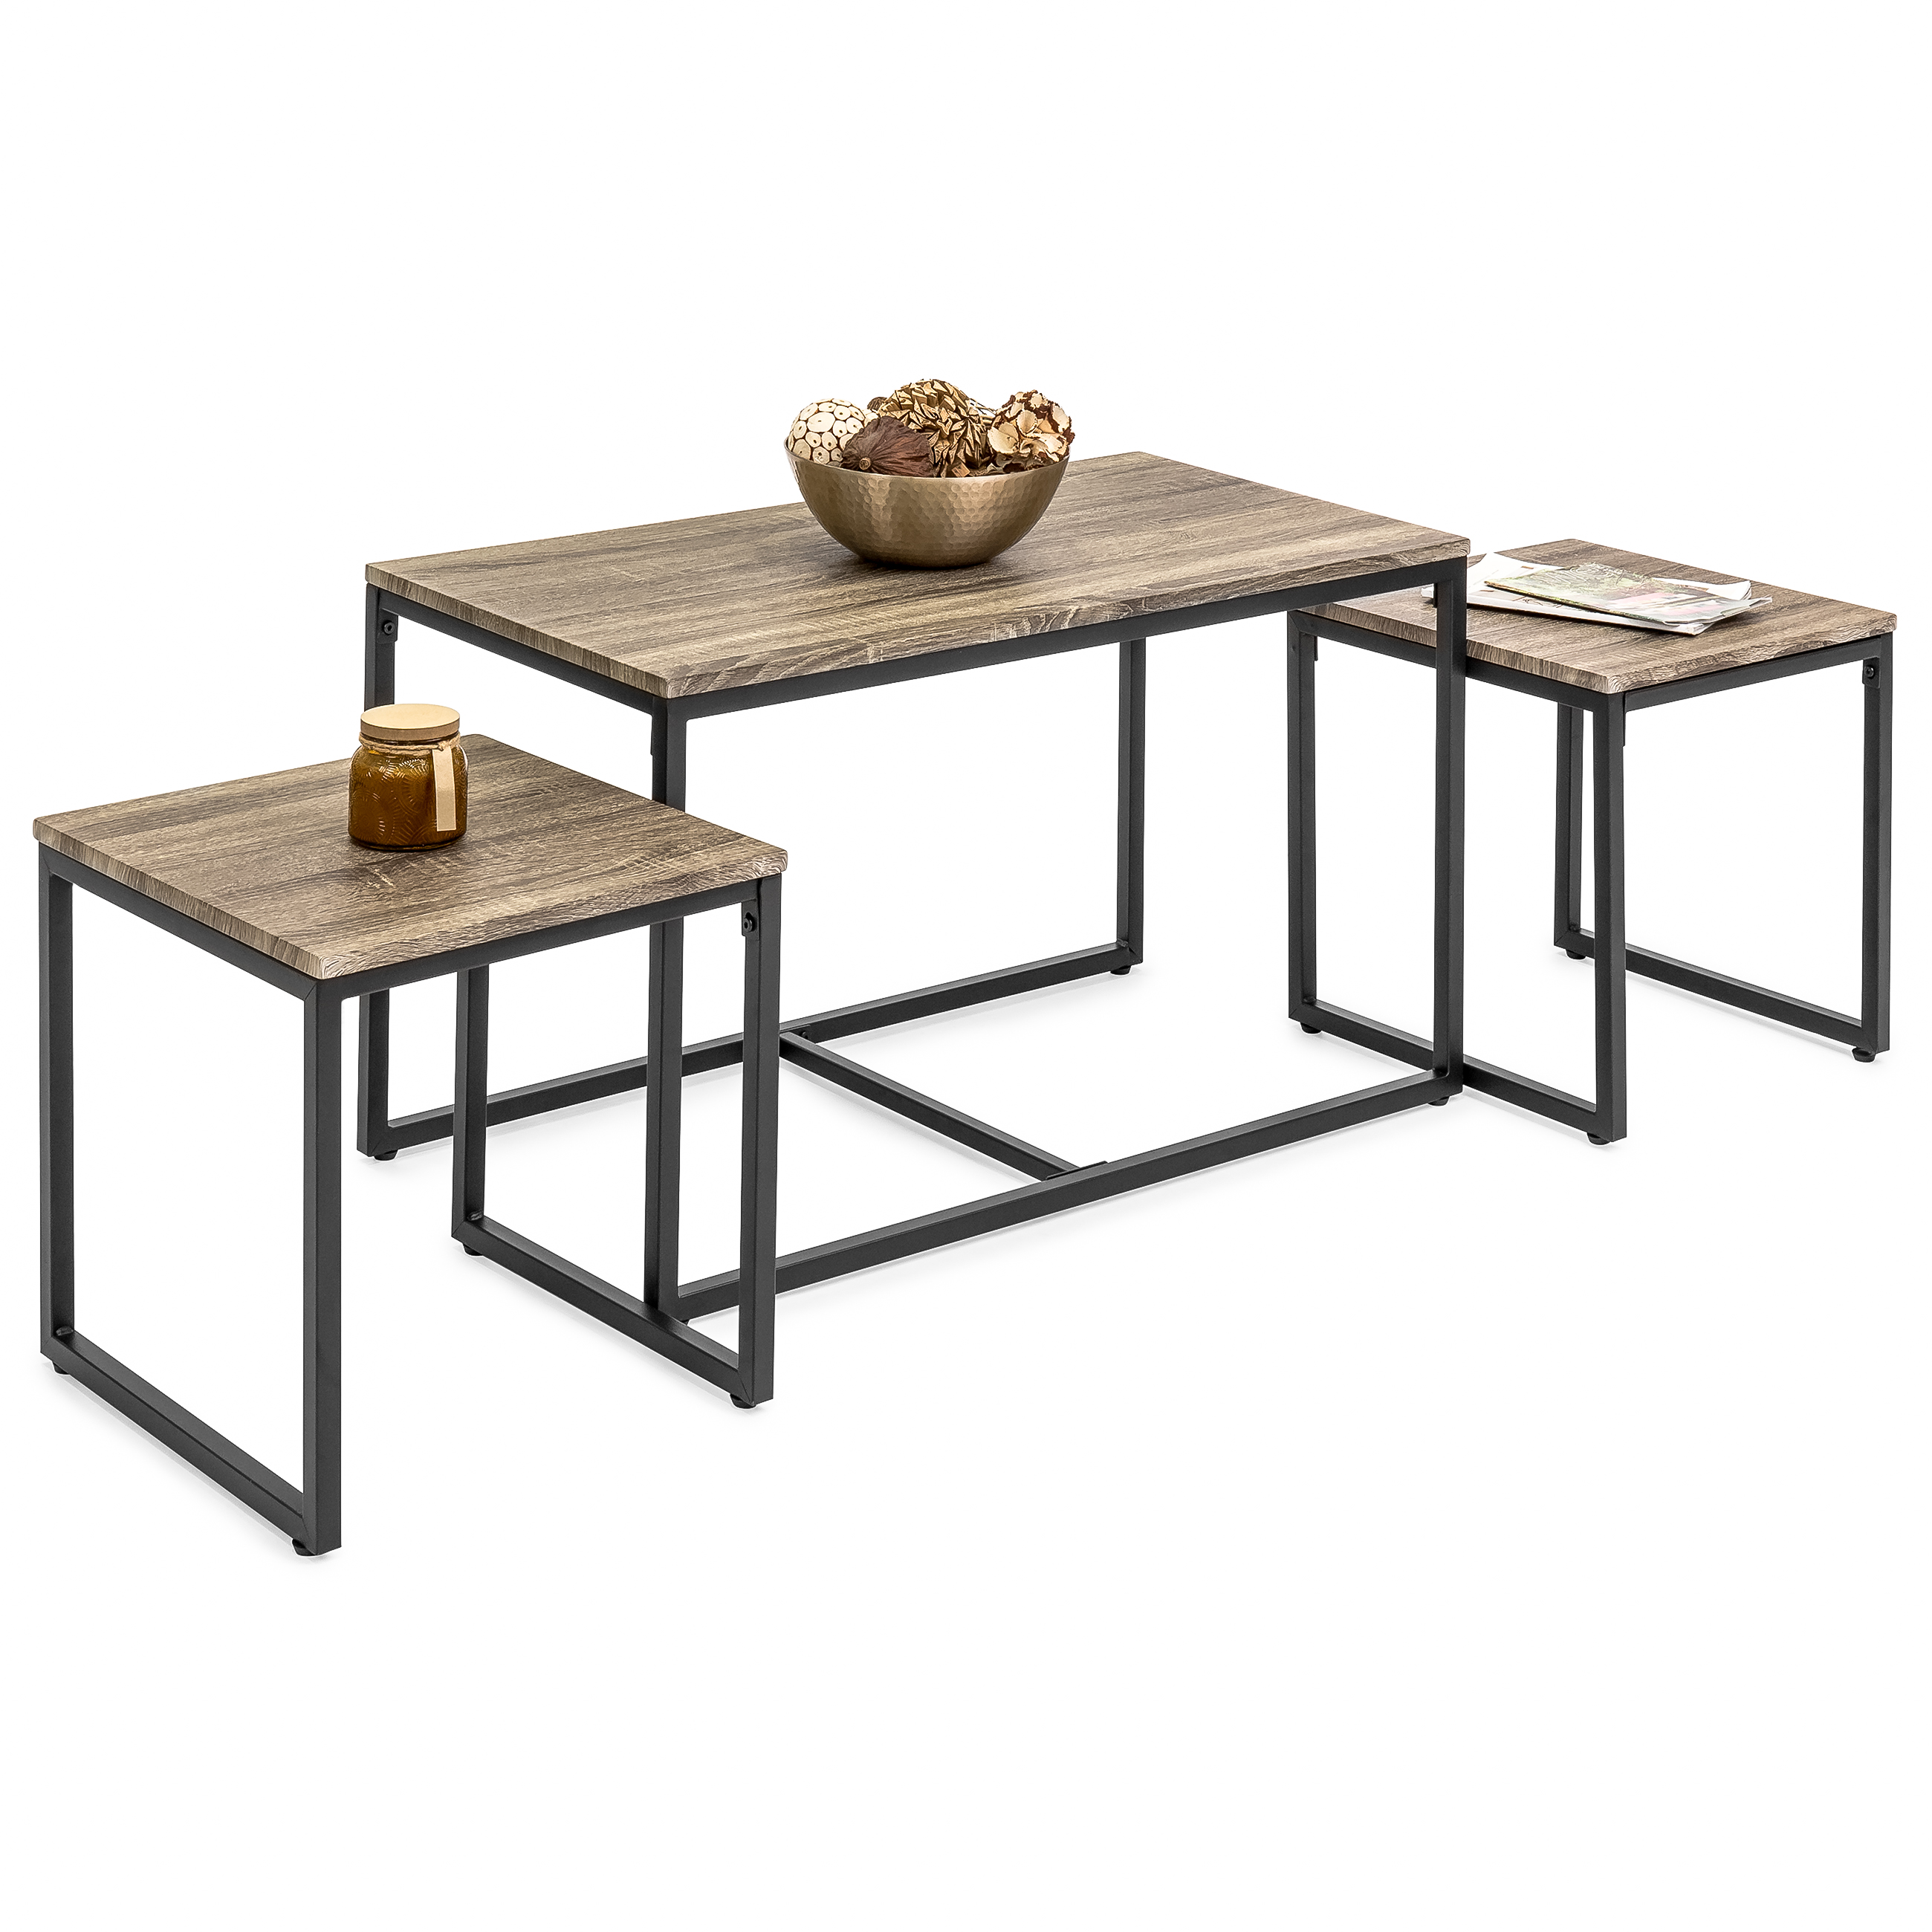 Best Choice Products 3 Piece Modern Nesting Coffee Accent Table Living Room Furniture Lounge Set W 2 End Tables Brown Walmart Com Walmart Com